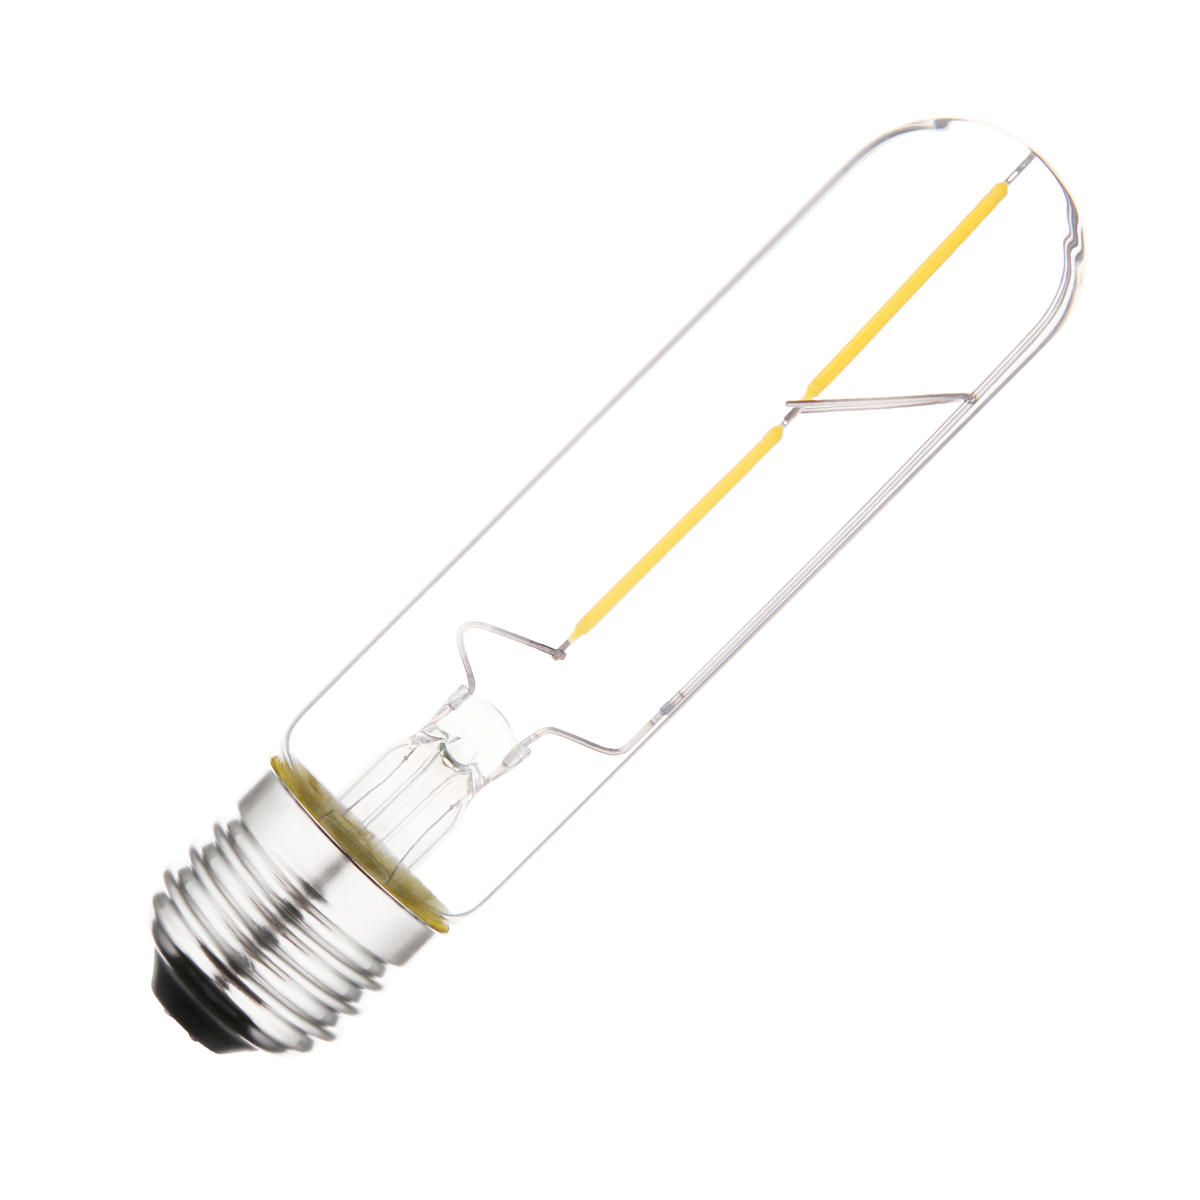 T10 E27 1 8w Warm White 200lm Cob Led Bulb Filament Retro Edison Lamp Ac110 240v Sale